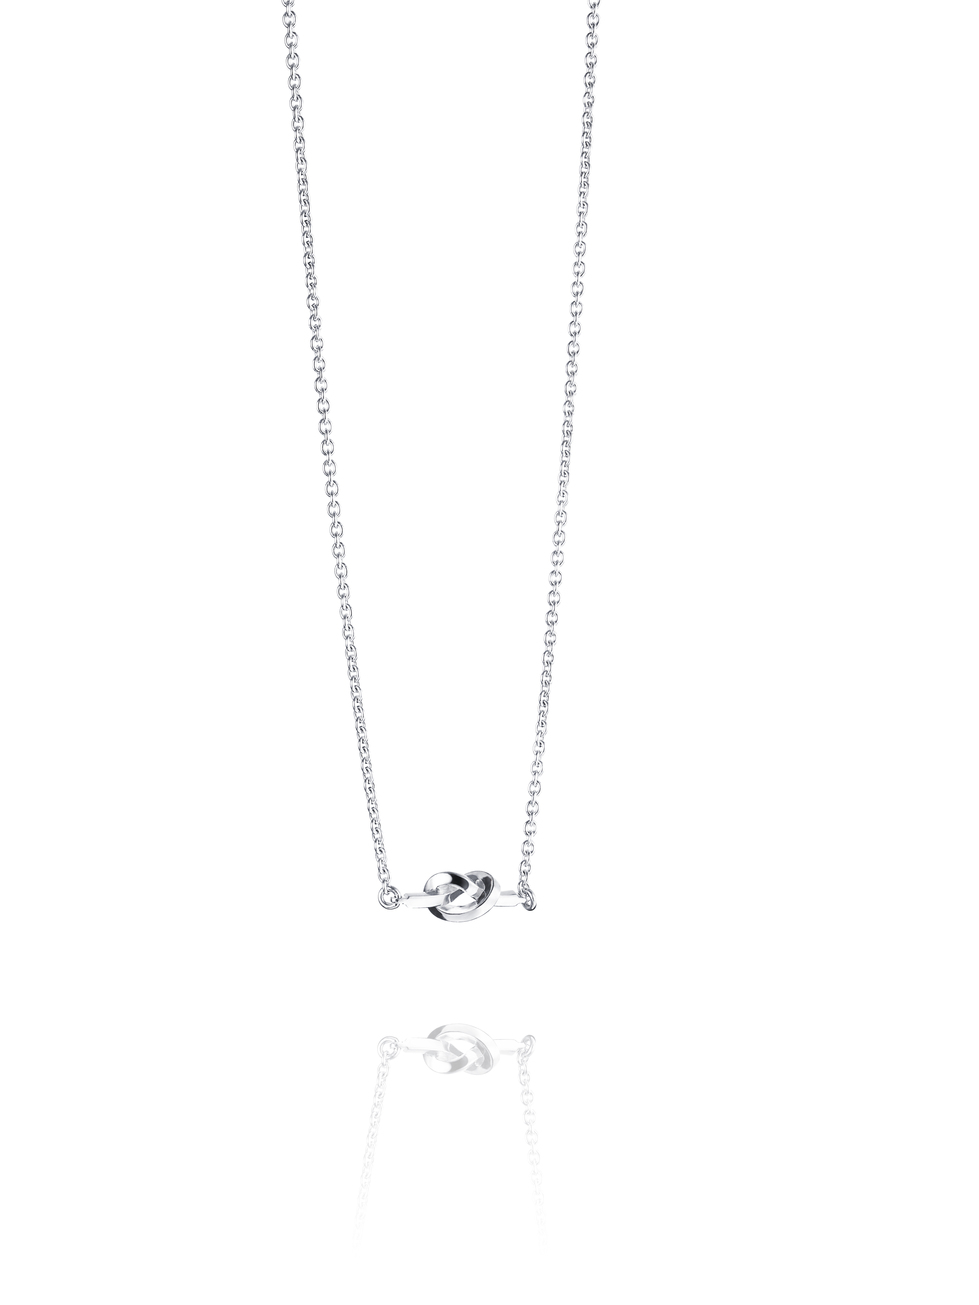 Love Knot Necklace 10-100-00966(2)